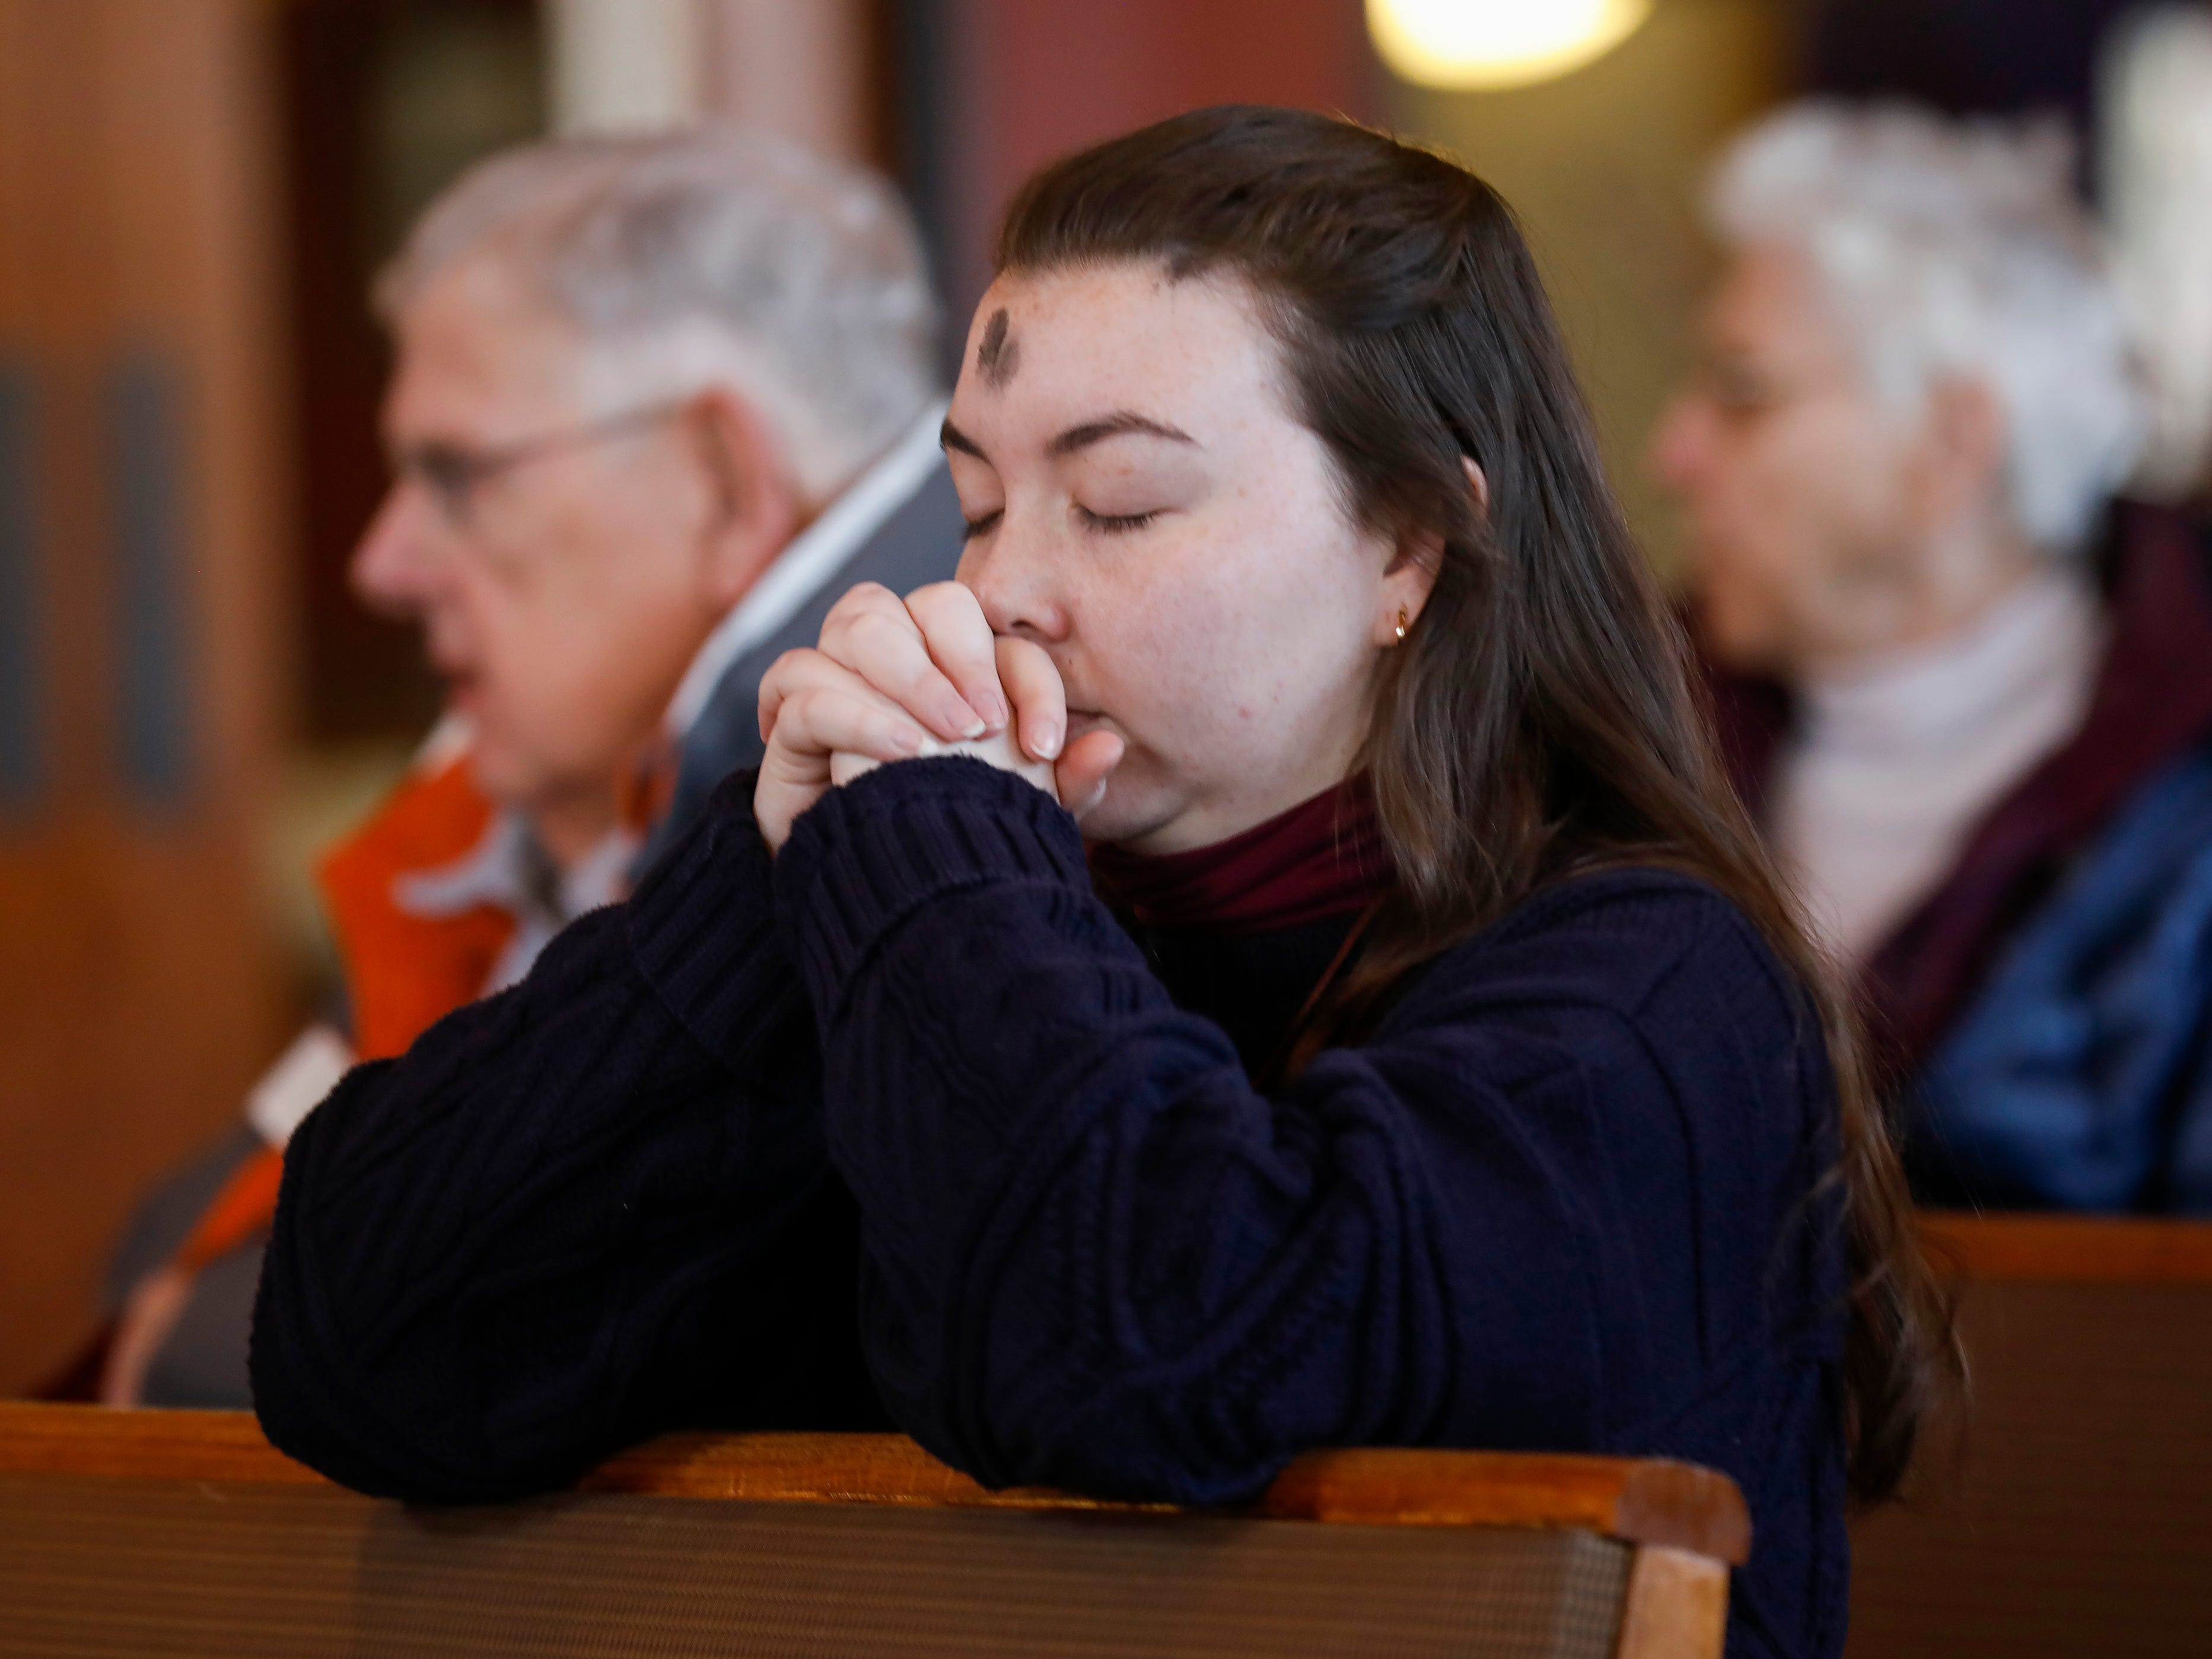 Students and other members of the community celebrate the Ash Wednesday Mass at the Missouri State University Catholic Campus Ministry on Wednesday, March 6, 2019.